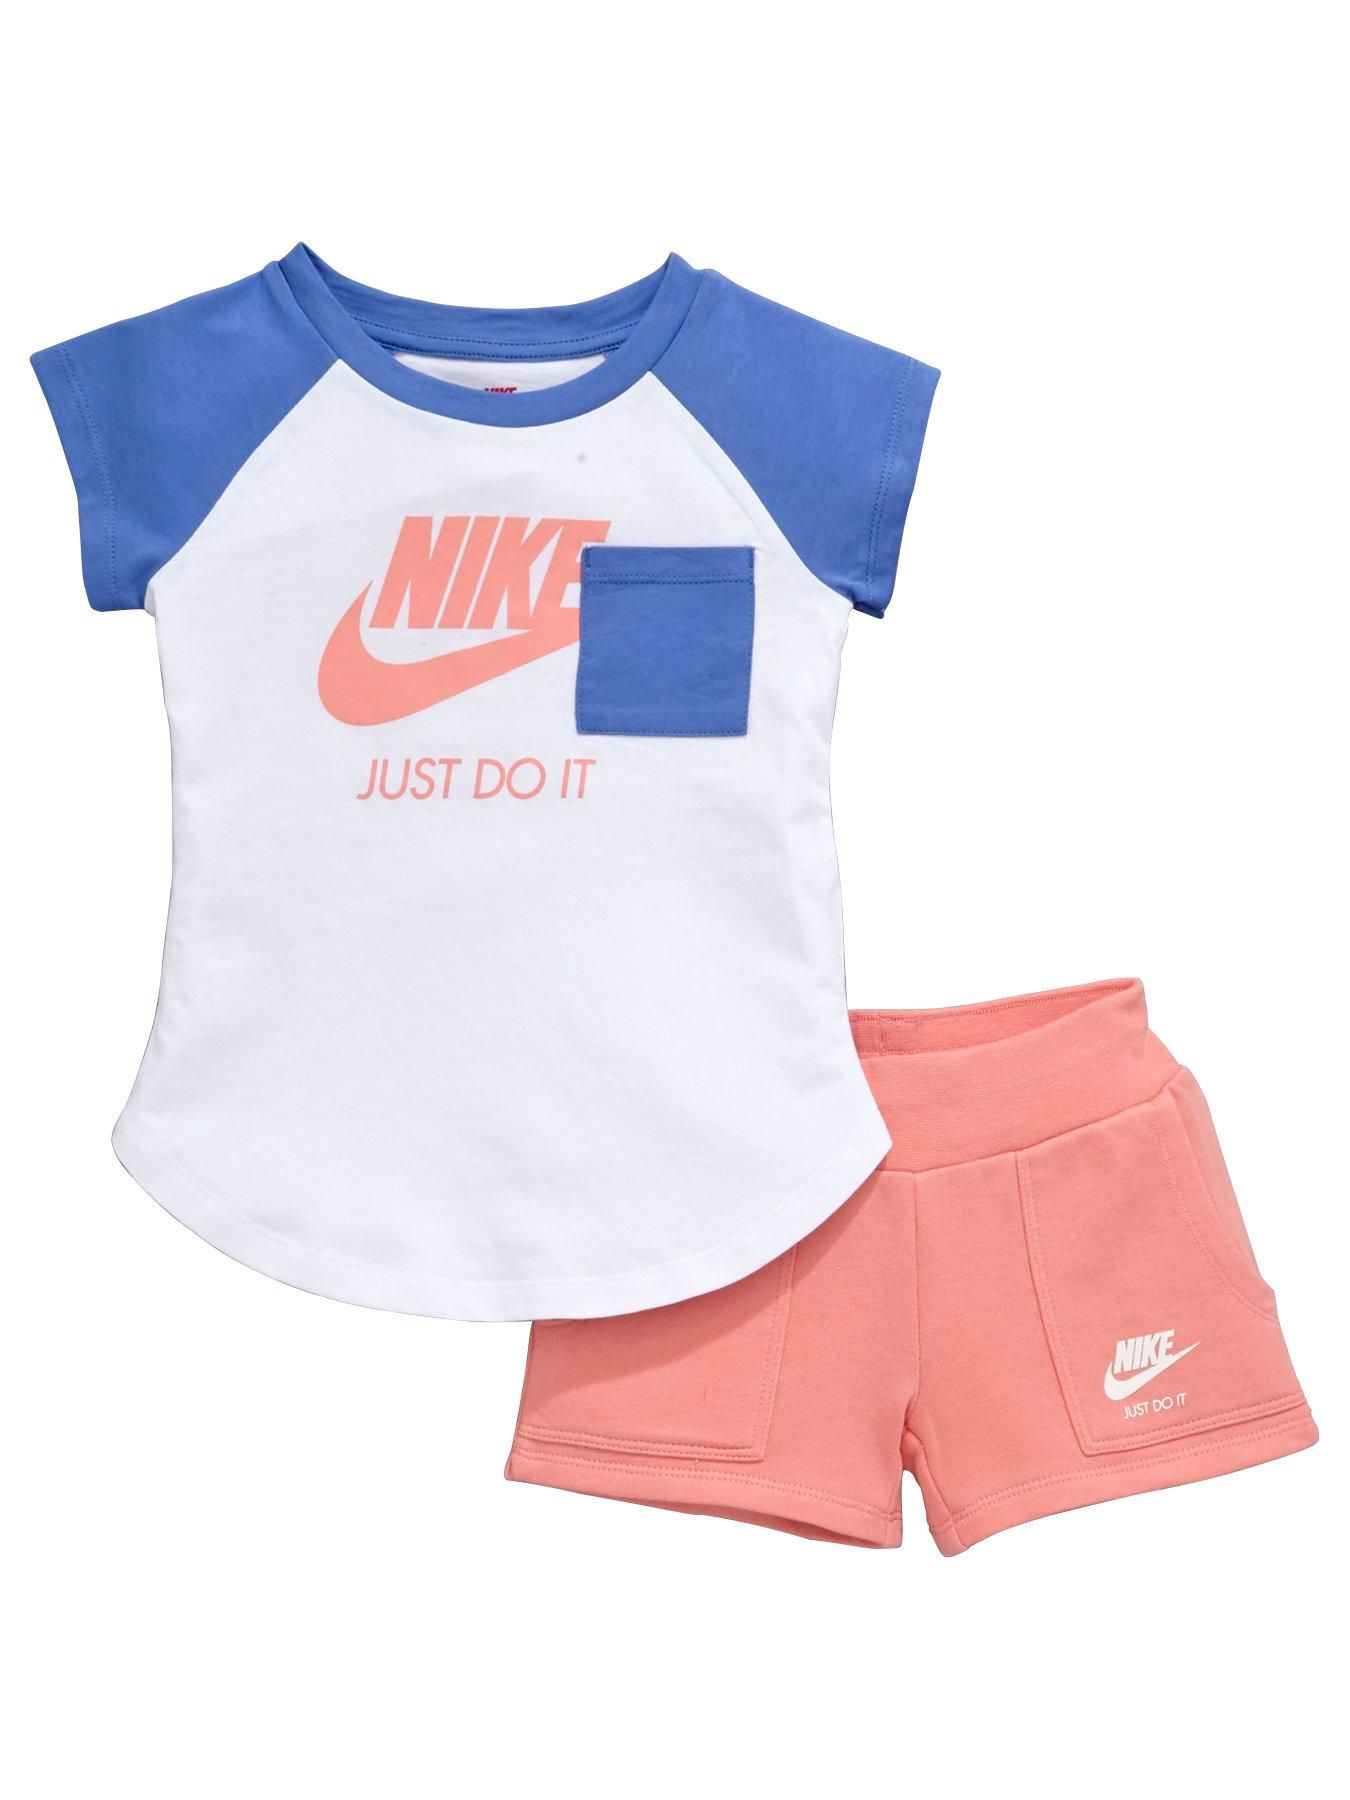 Nike Baby Girl Clothes Awesome Washing Instructions Machine Washable100% Cotton  Littlewood Decorating Inspiration